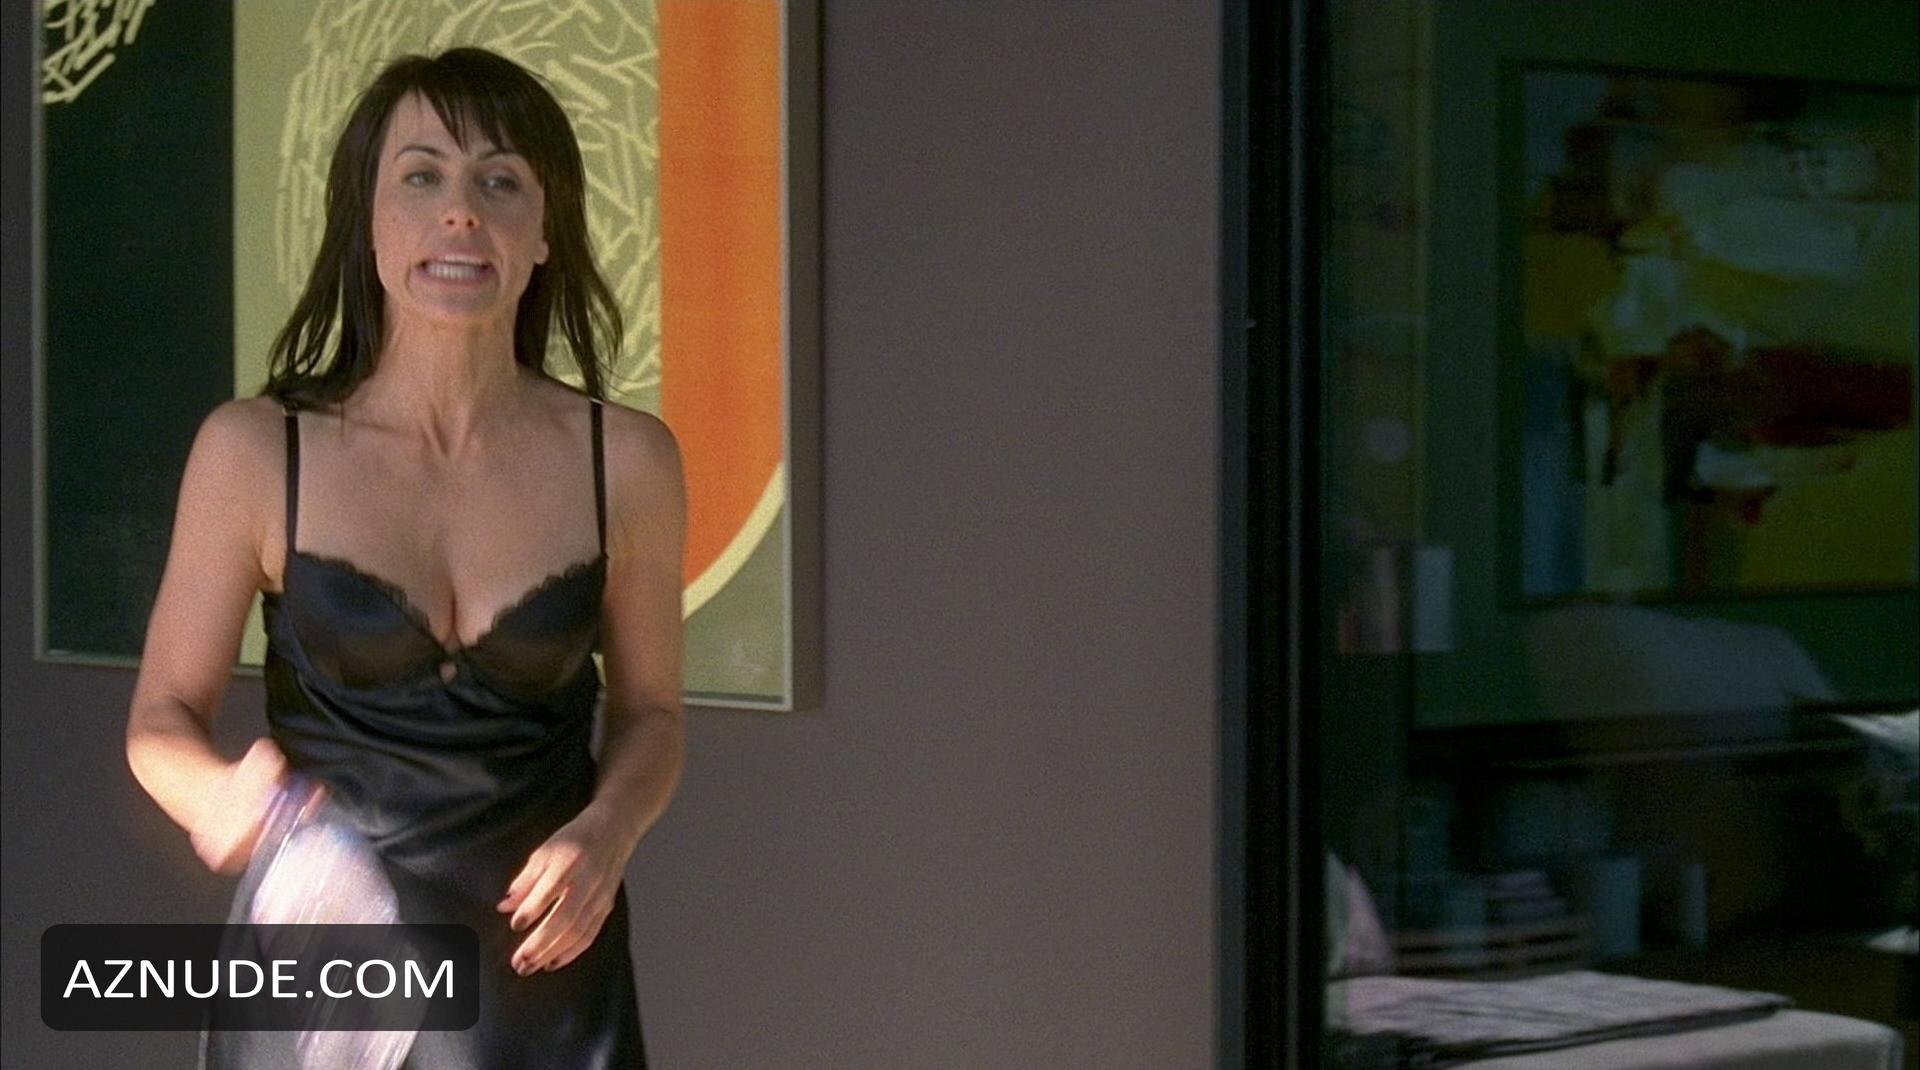 Tits Nude Constance Zimmer Images